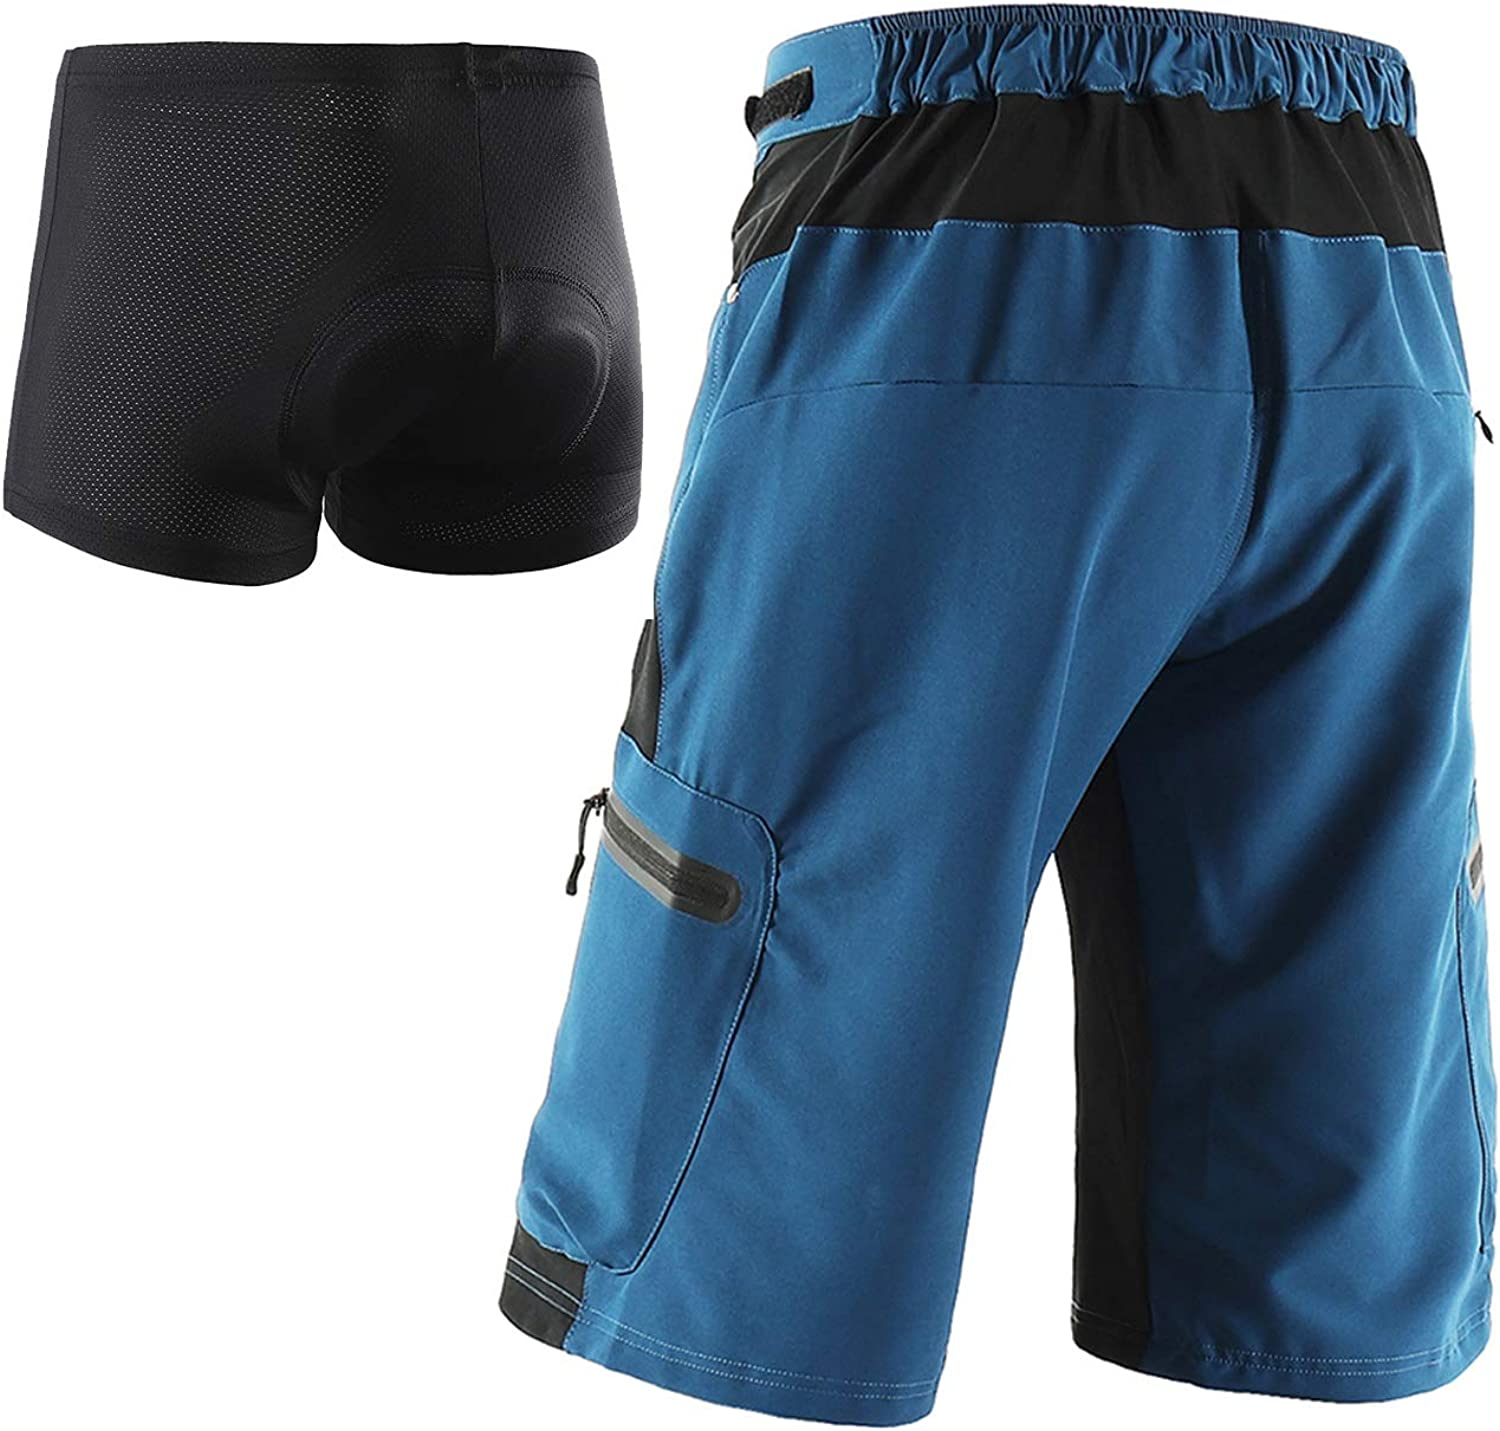 ARSUXEO Mens Cycling Shorts Loose Fit MTB Mountain Shorts Water Resistant Outdoor Sports Bottom 1202